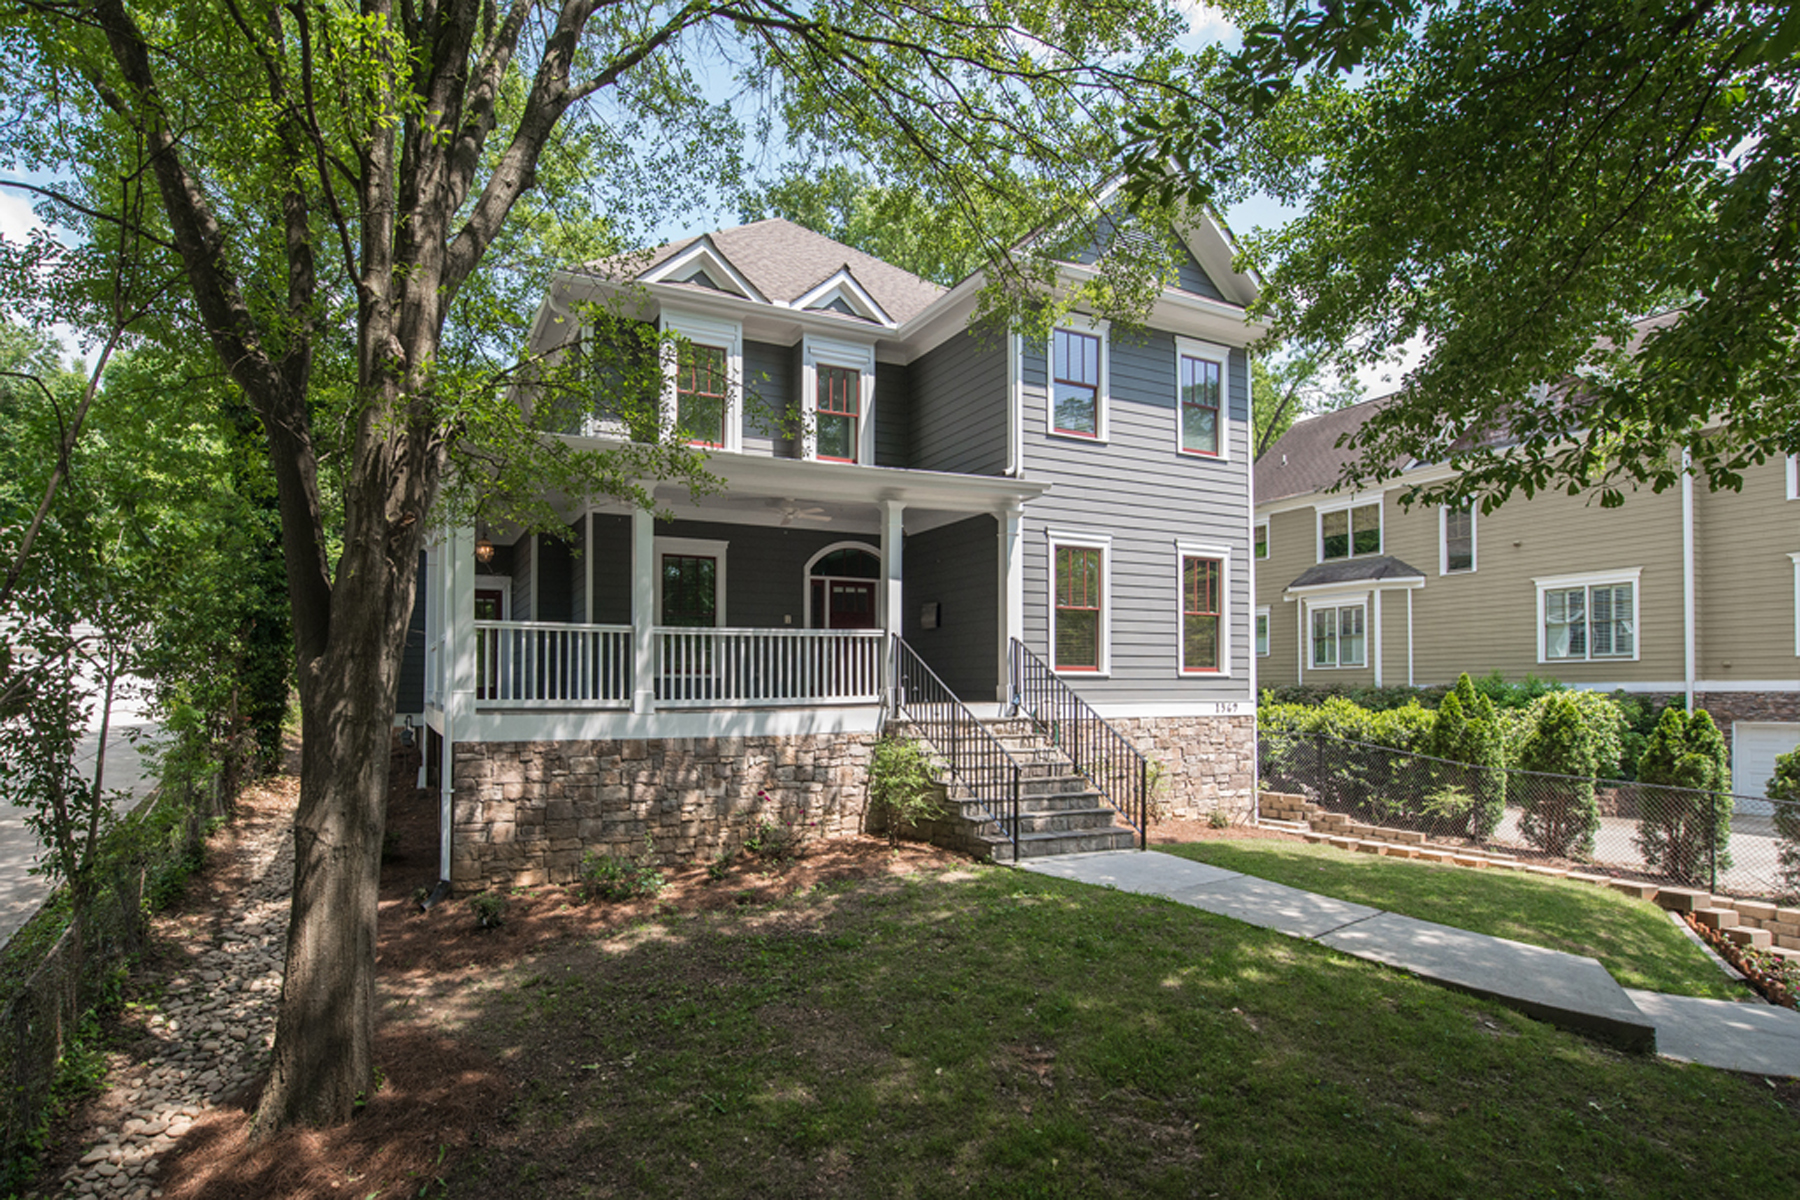 Single Family Home for Sale at Exceptional Candler Park Home - Better Than New! 1369 Euclid Avenue NE Candler Park, Atlanta, Georgia 30307 United States